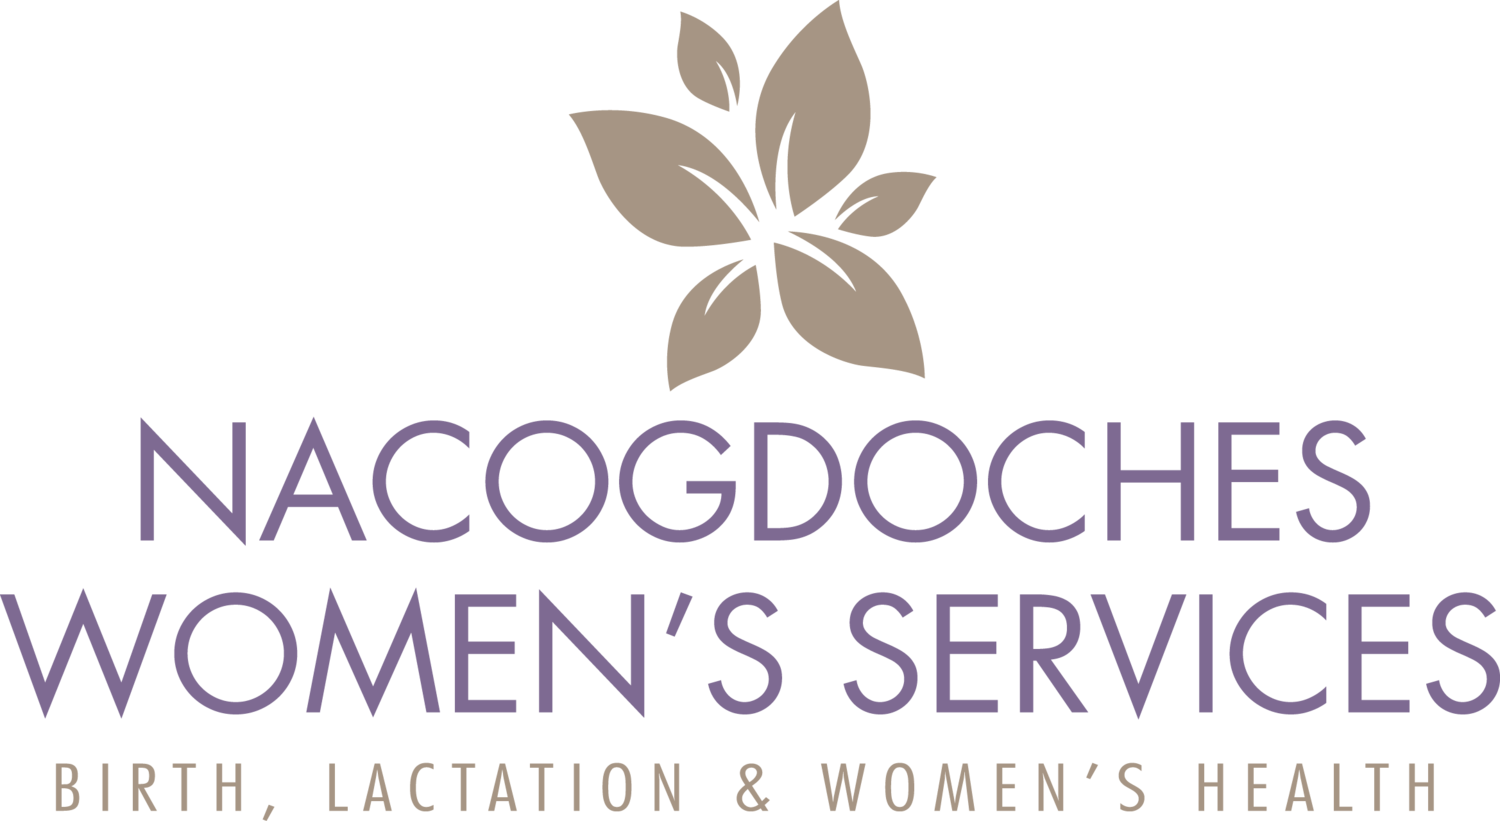 Nacogdoches Women's Services